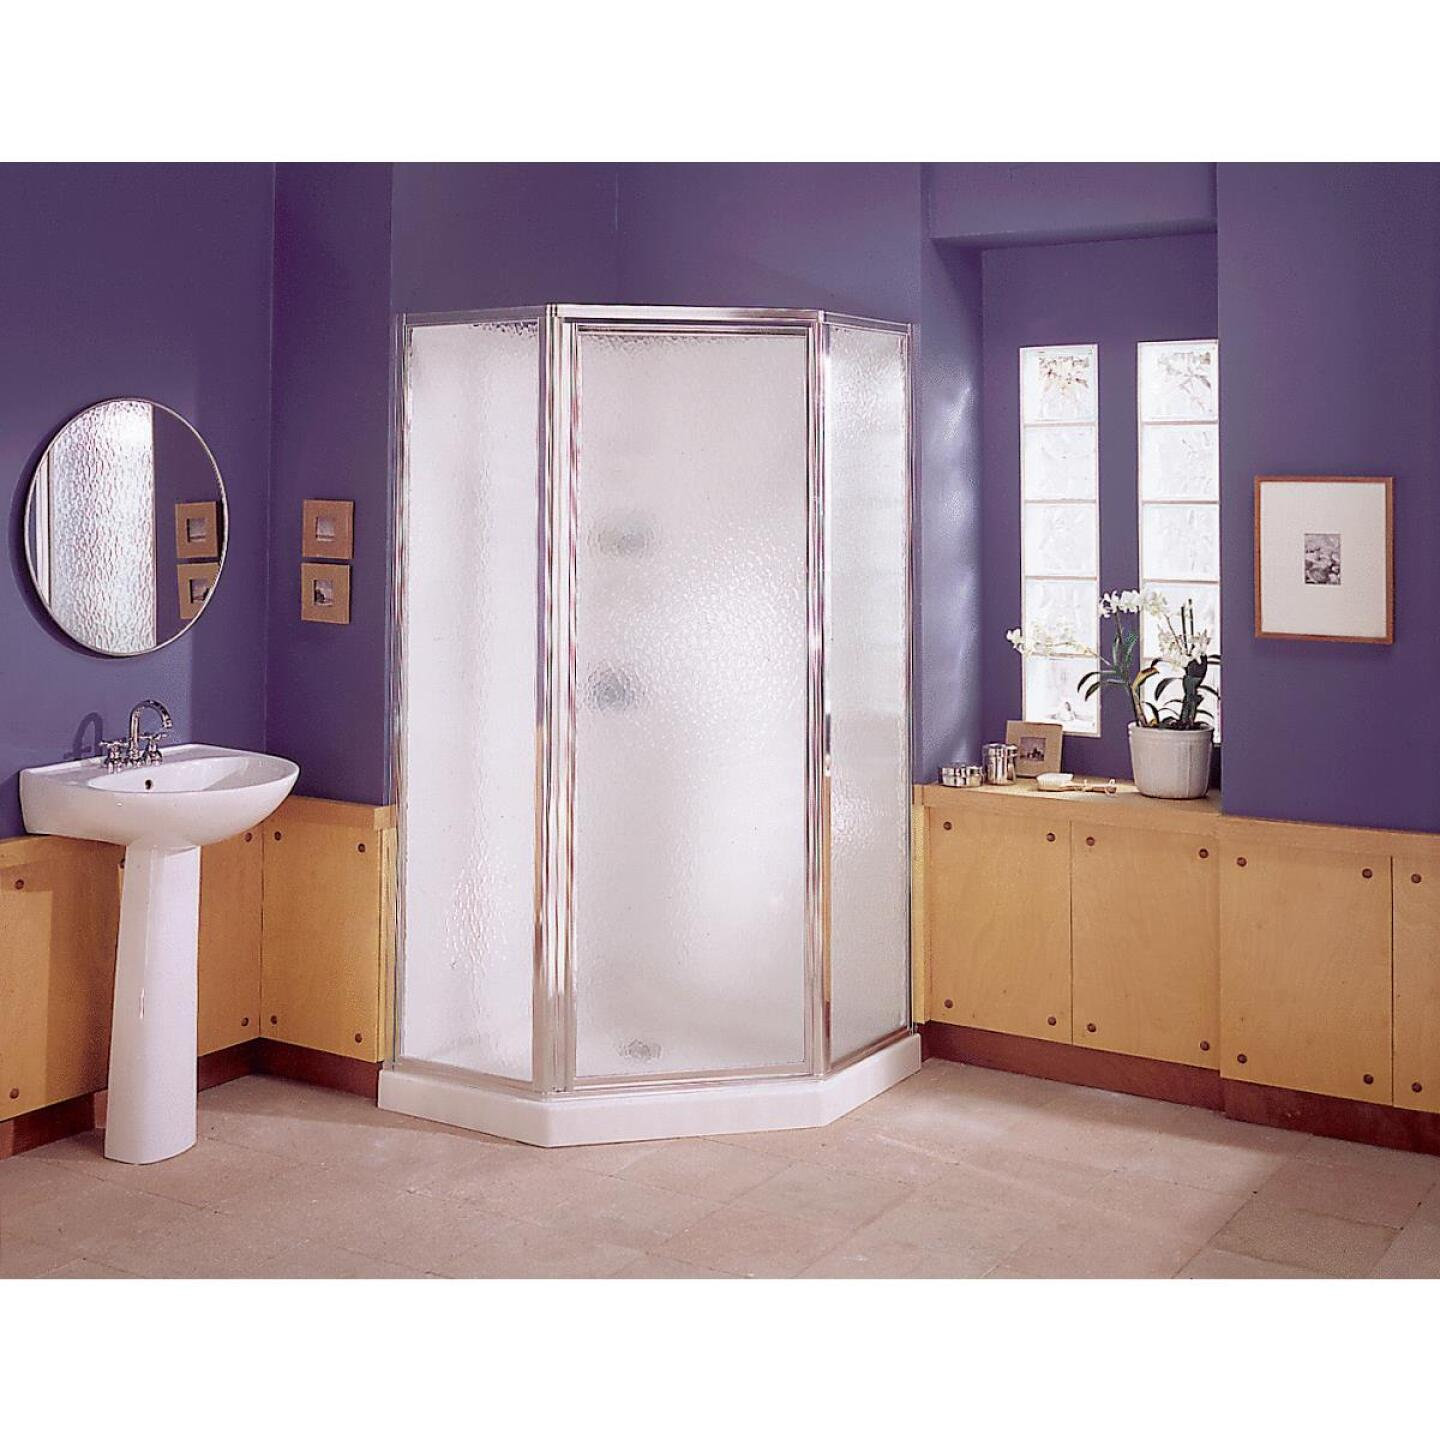 Sterling 38 In. W x 76 In. H White Polypropylene Shower Stall Image 1